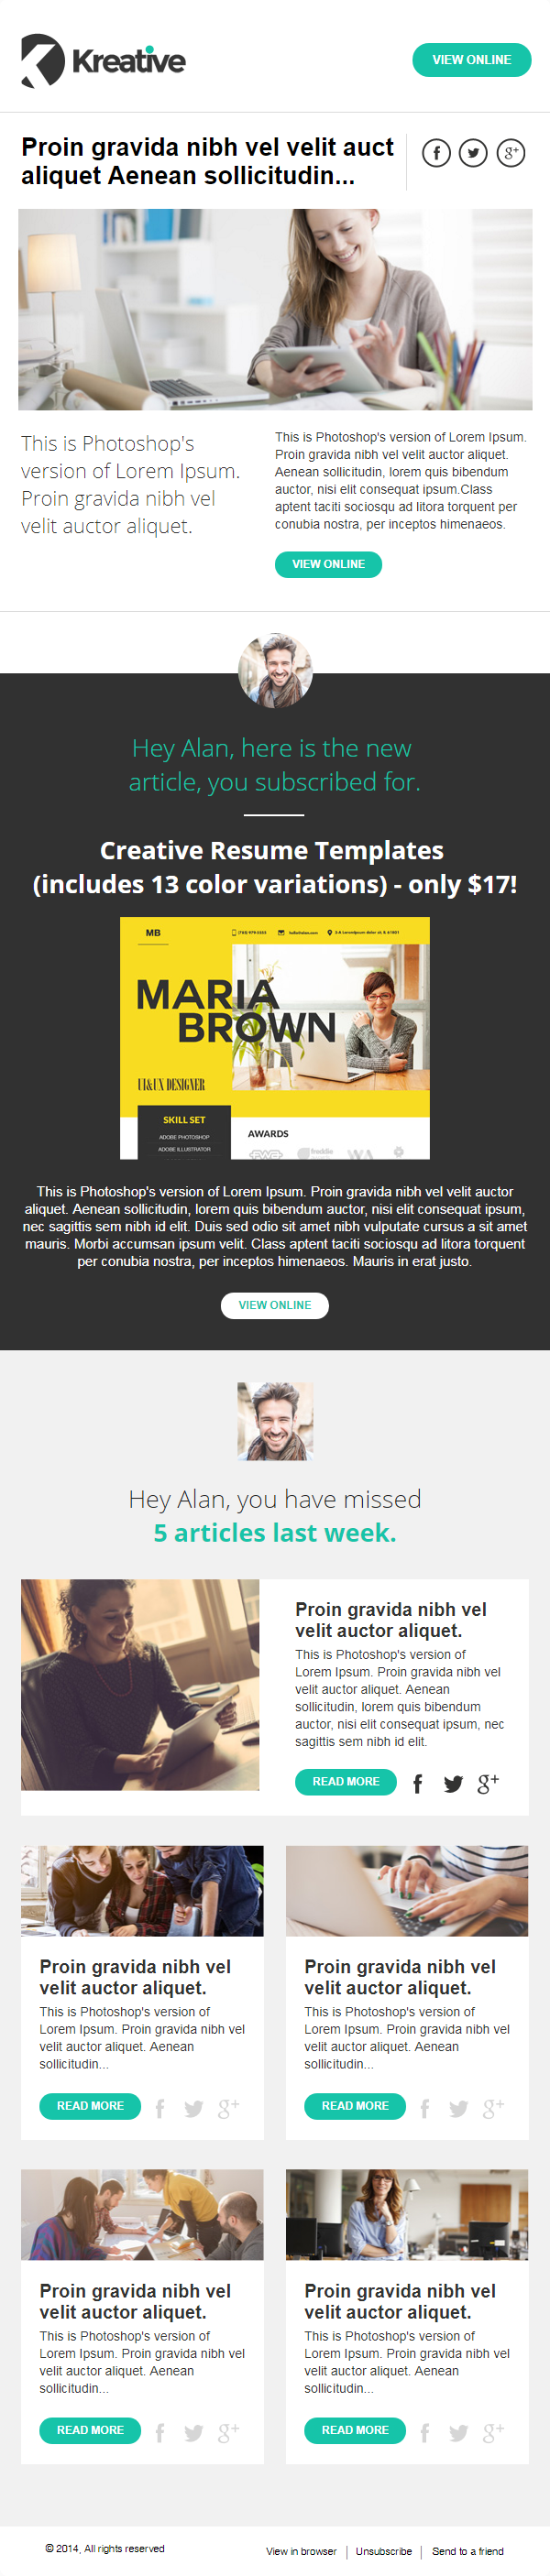 Kreative newsletter-template